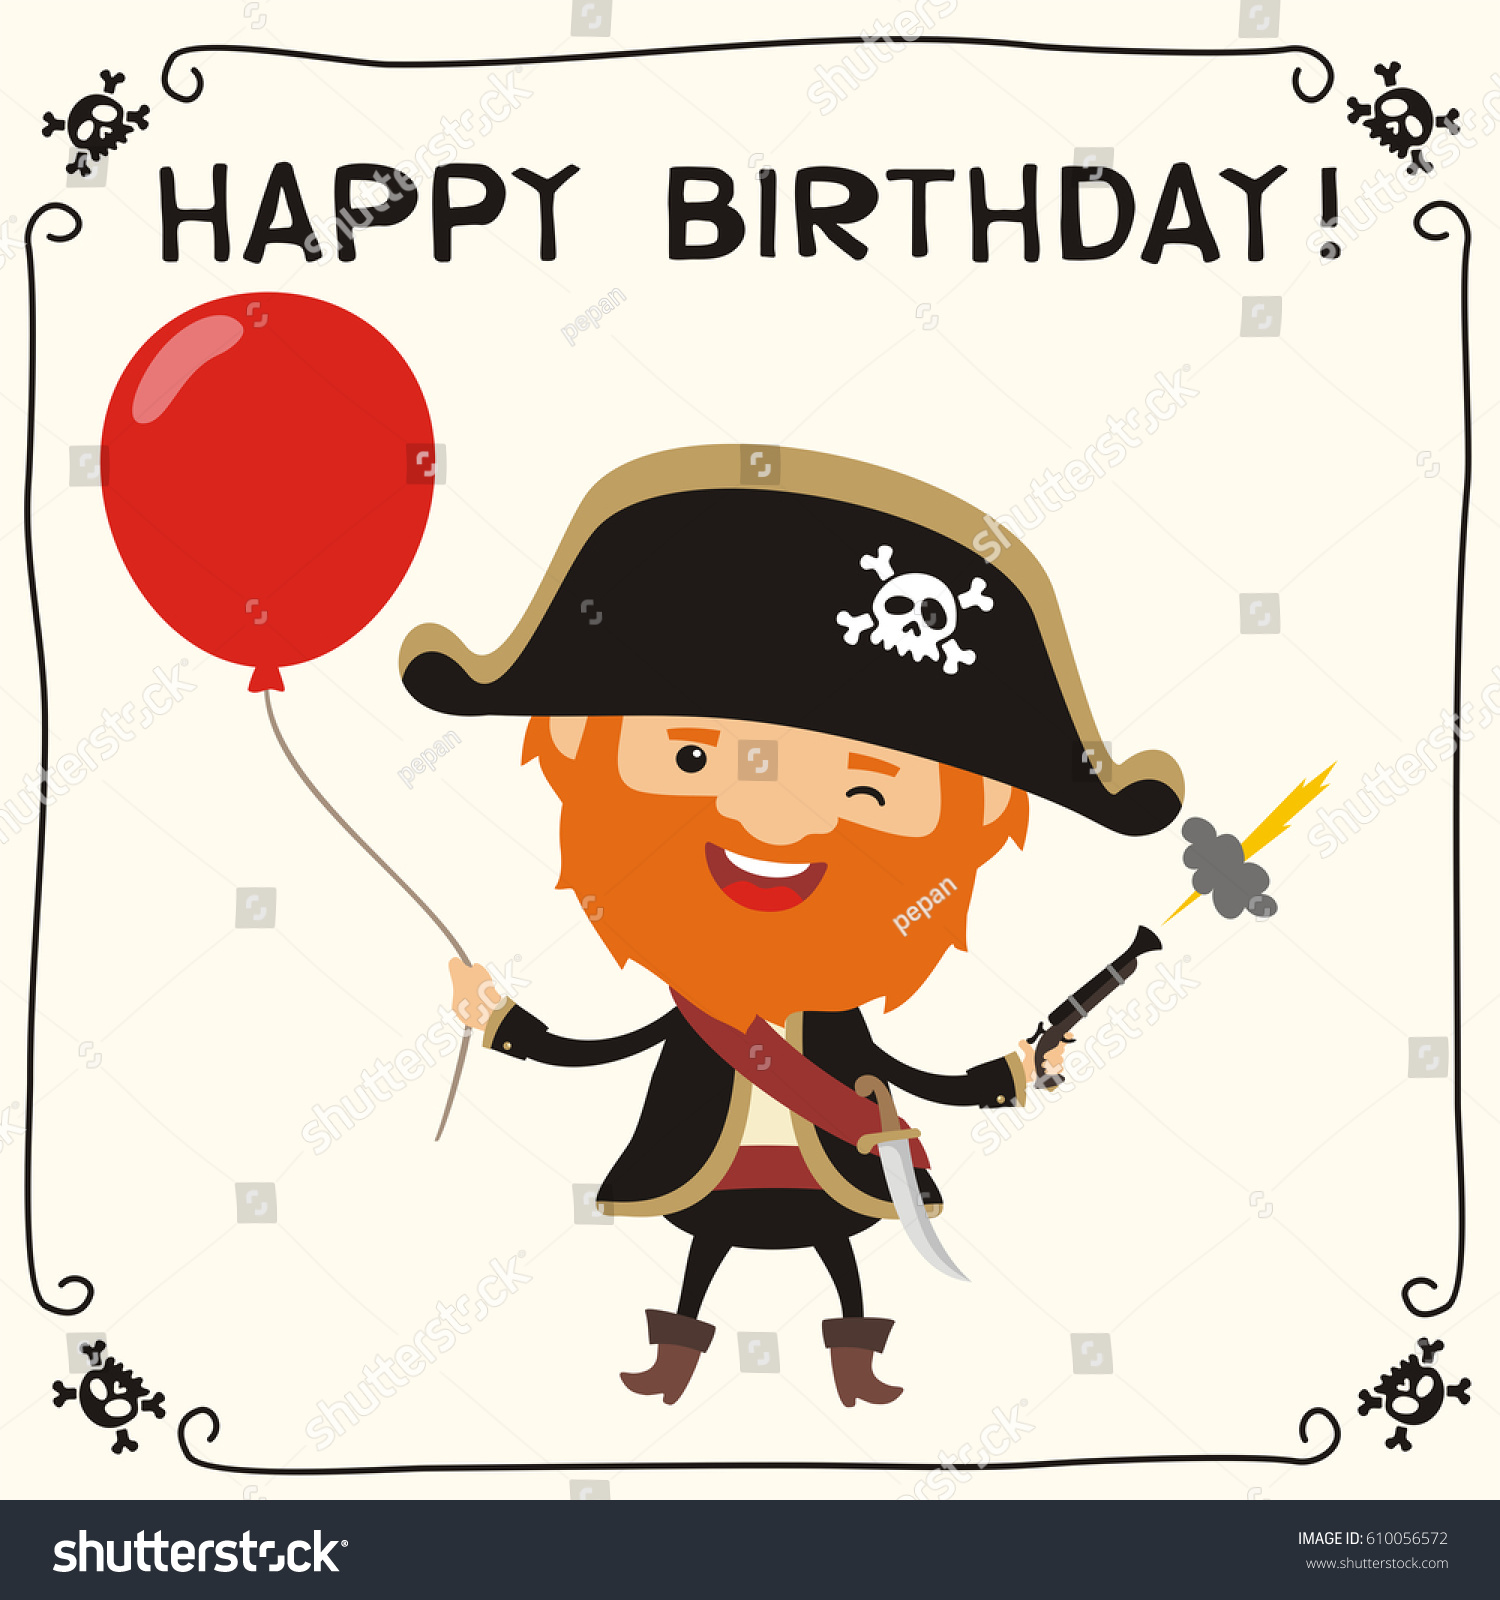 Happy birthday funny pirate red balloon stock vector royalty free funny pirate with red balloon greeting card m4hsunfo